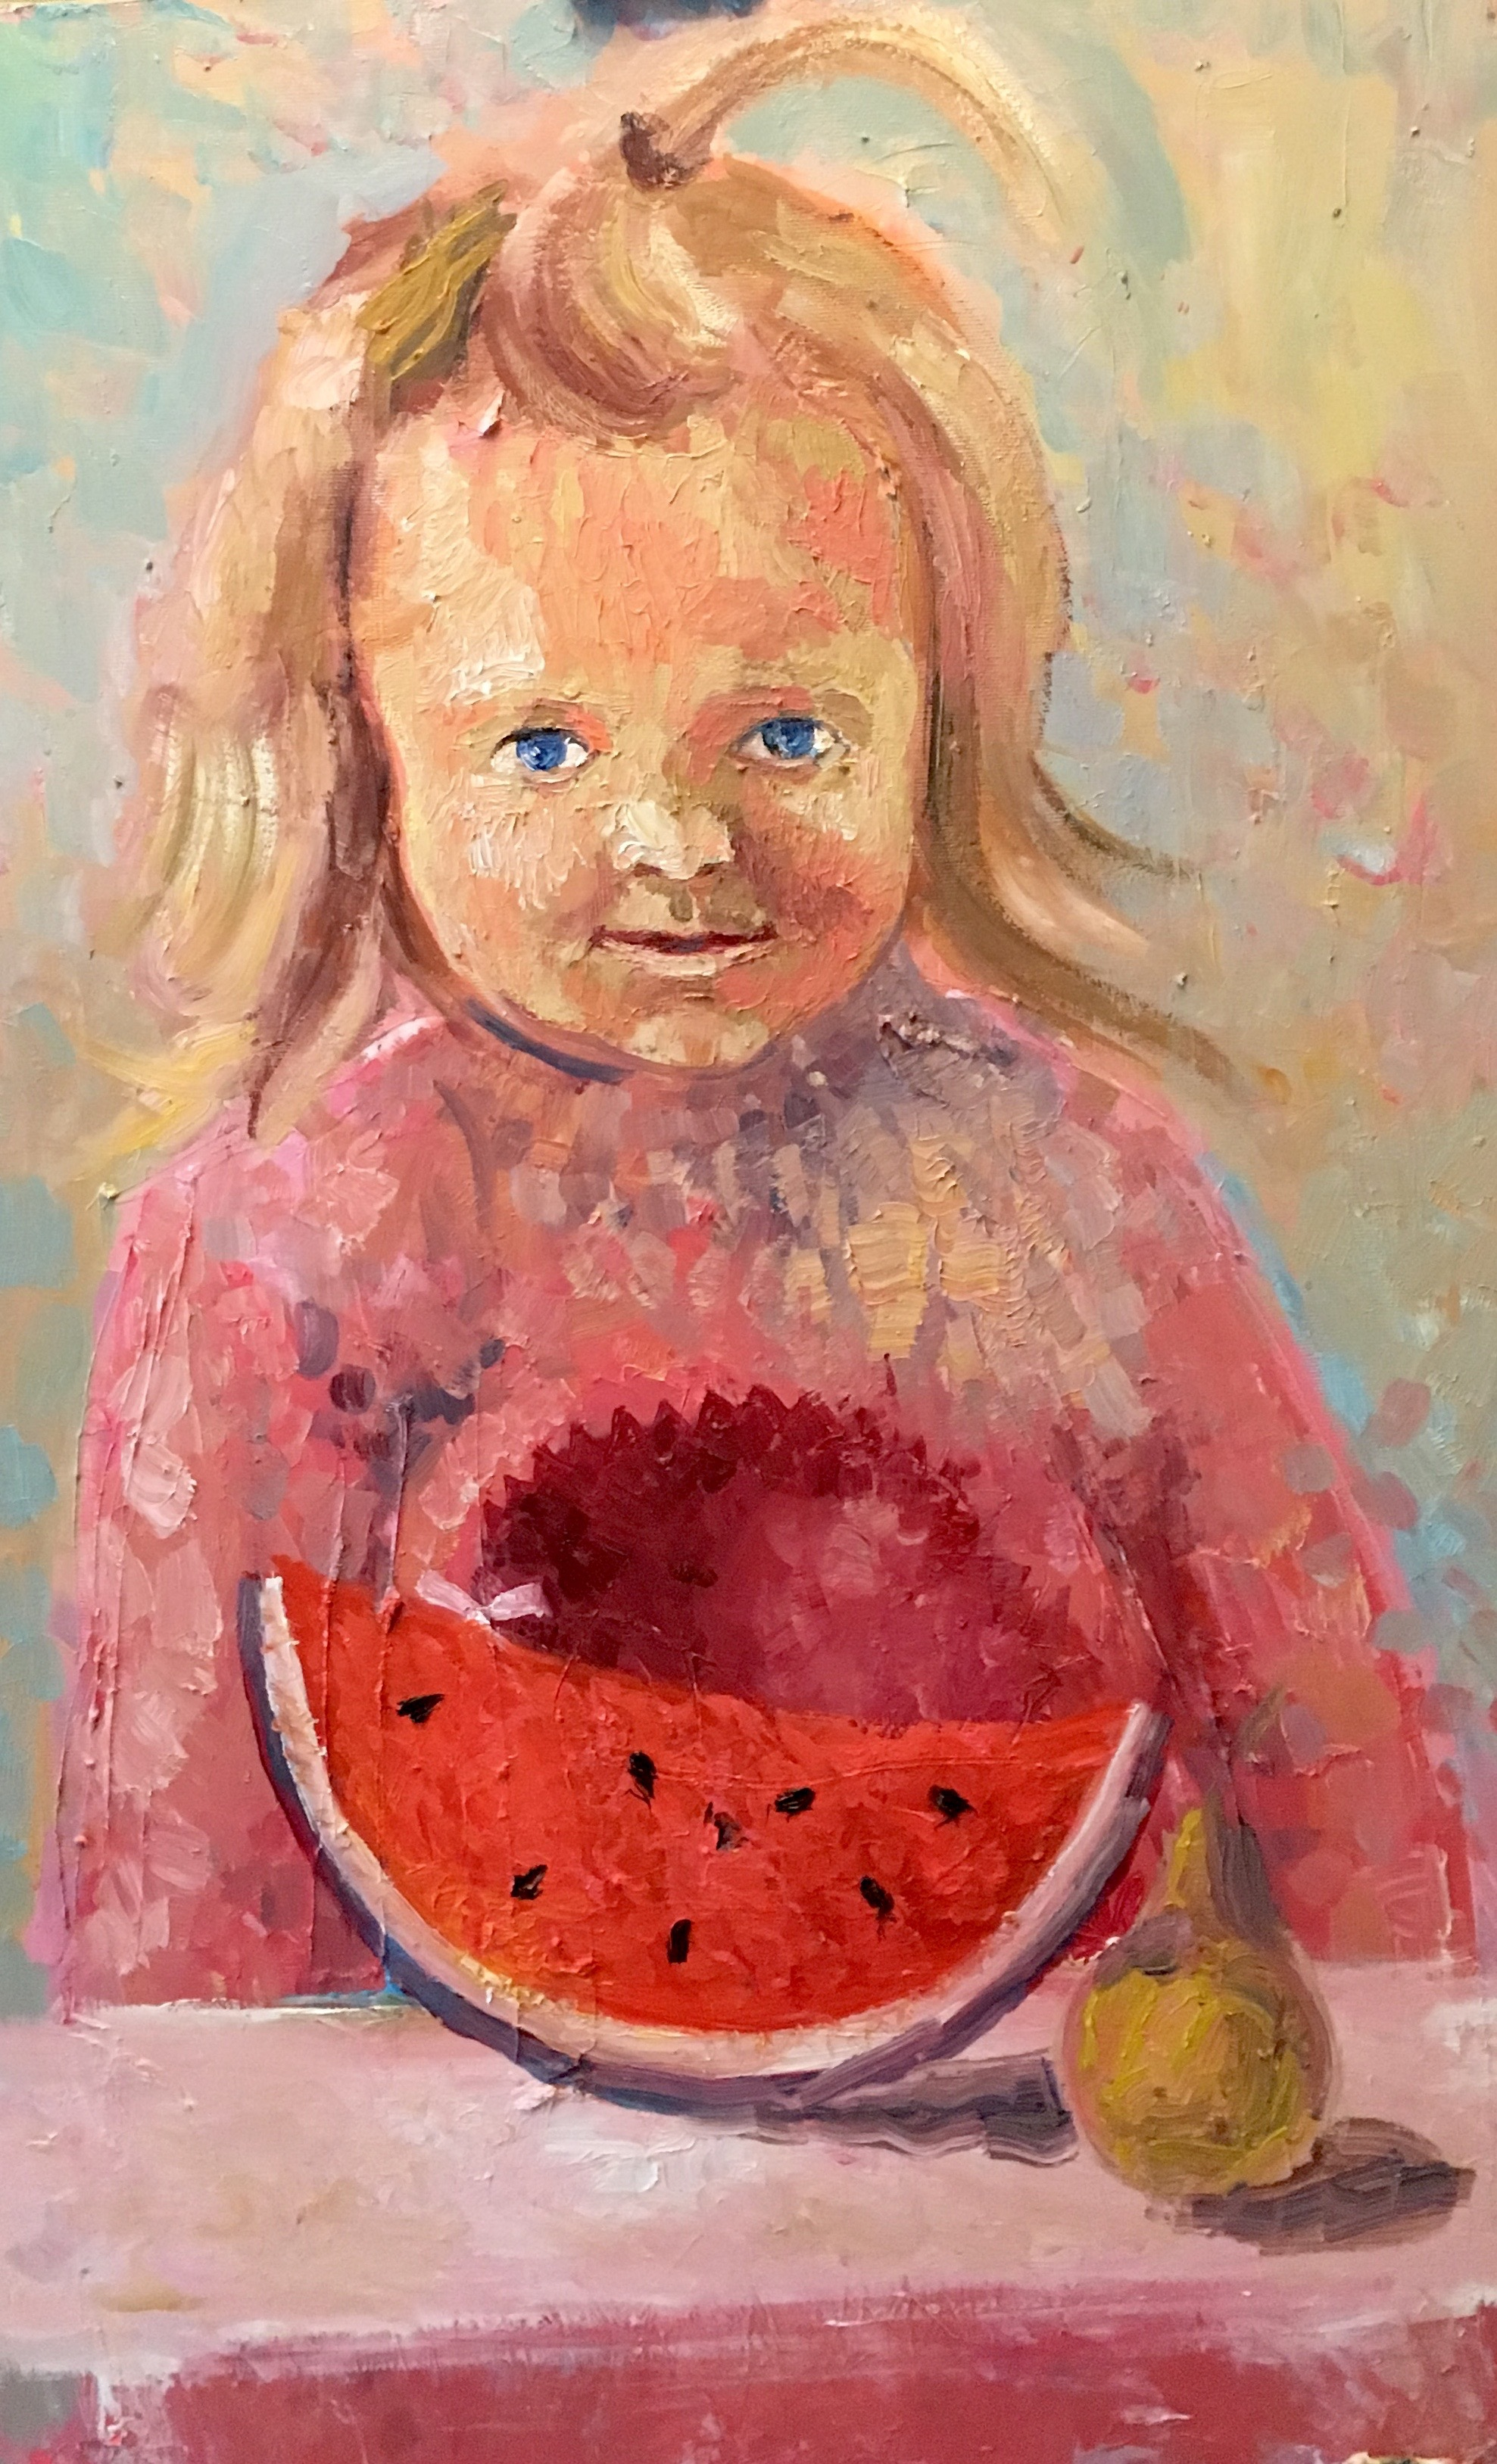 Water-melon, 2016, oil, canvas